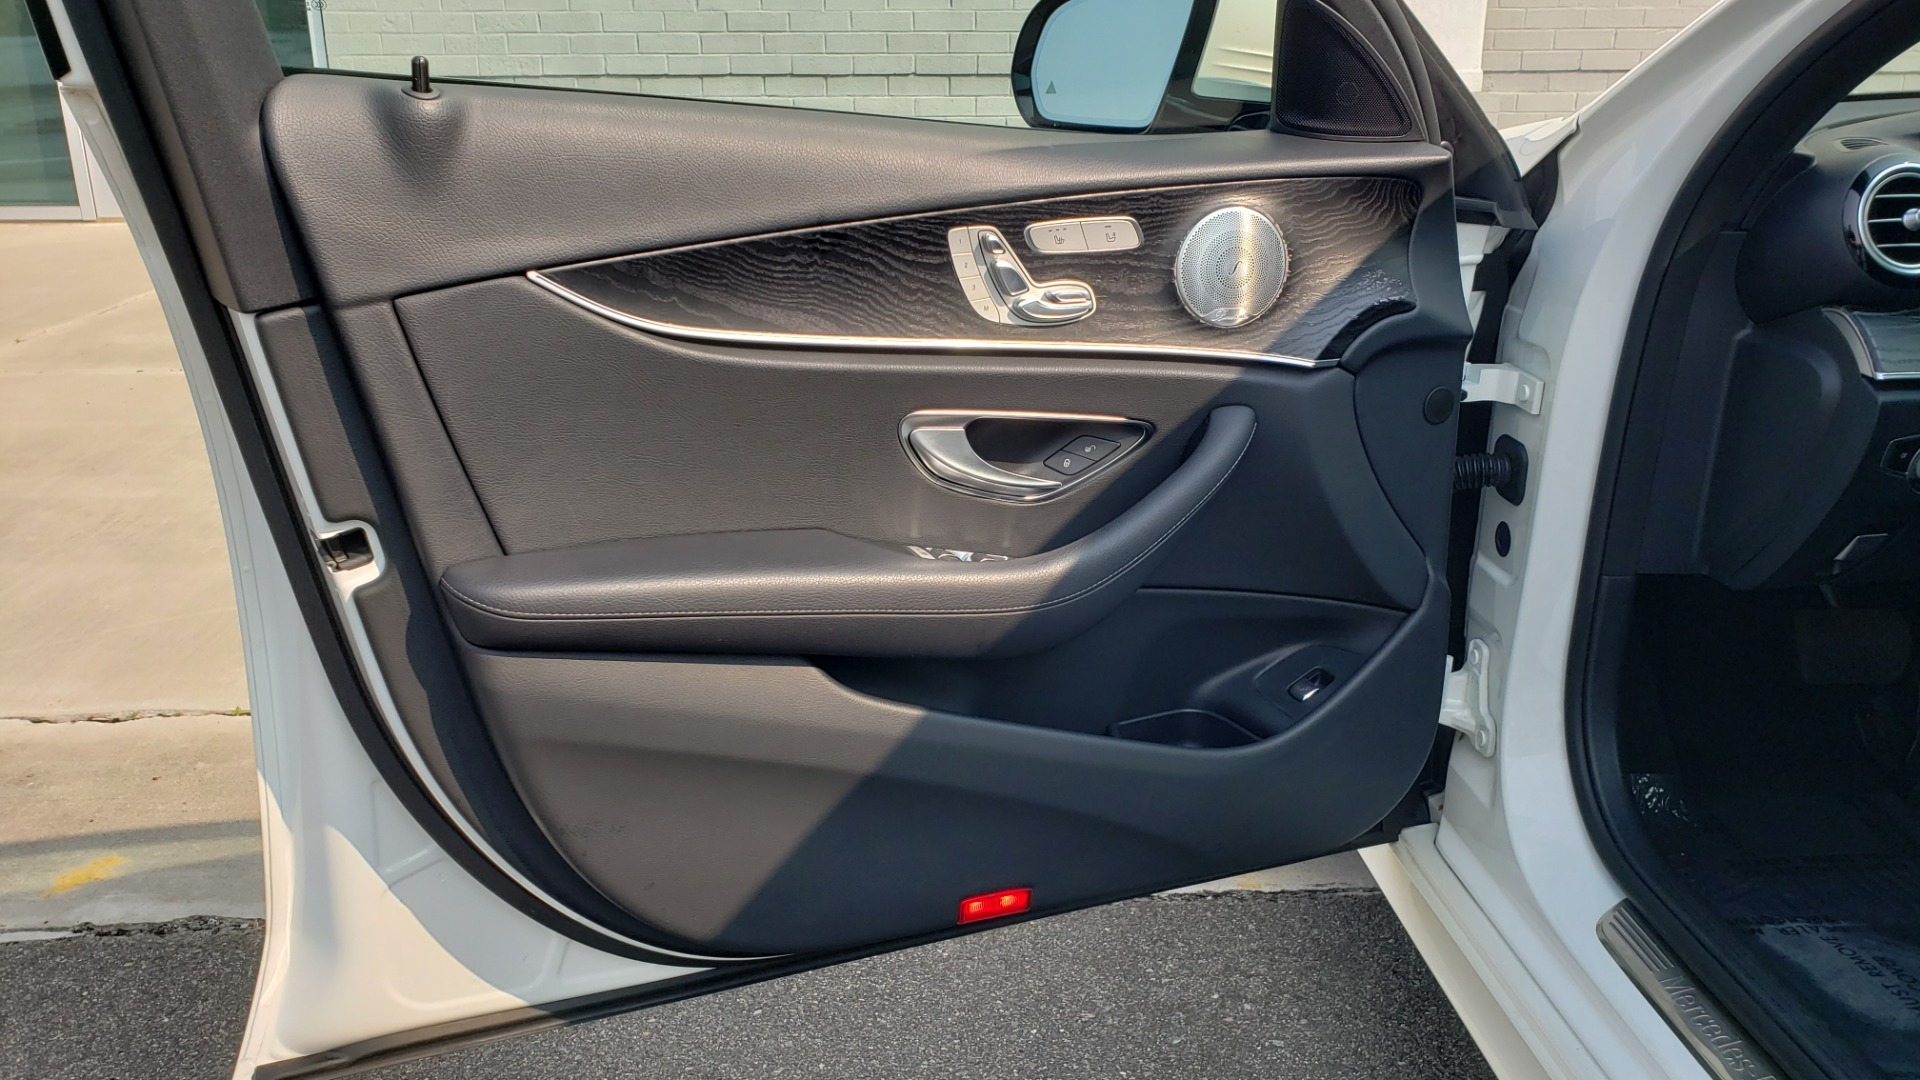 Used 2018 Mercedes-Benz E-CLASS E 300 4MATIC / PREMIUM / NAV / PANO-ROOF / BURMESTER / REARVIEW for sale $41,995 at Formula Imports in Charlotte NC 28227 28